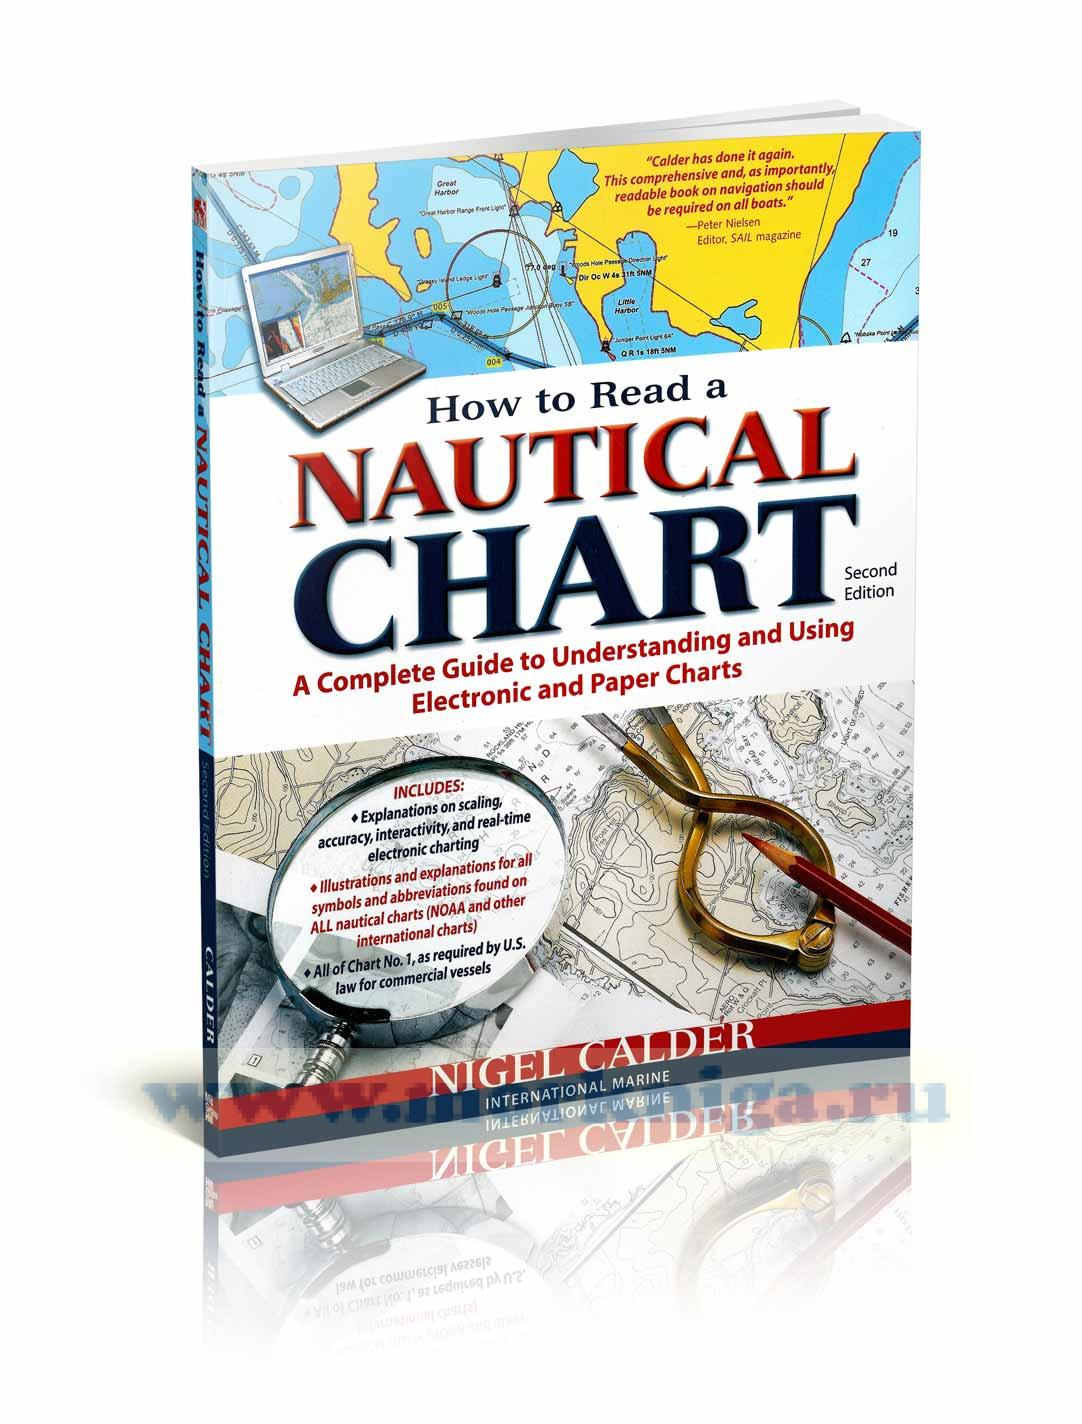 How to read a nautical chart. A complete guide to understanding and using electronic and paper charts. Second edition